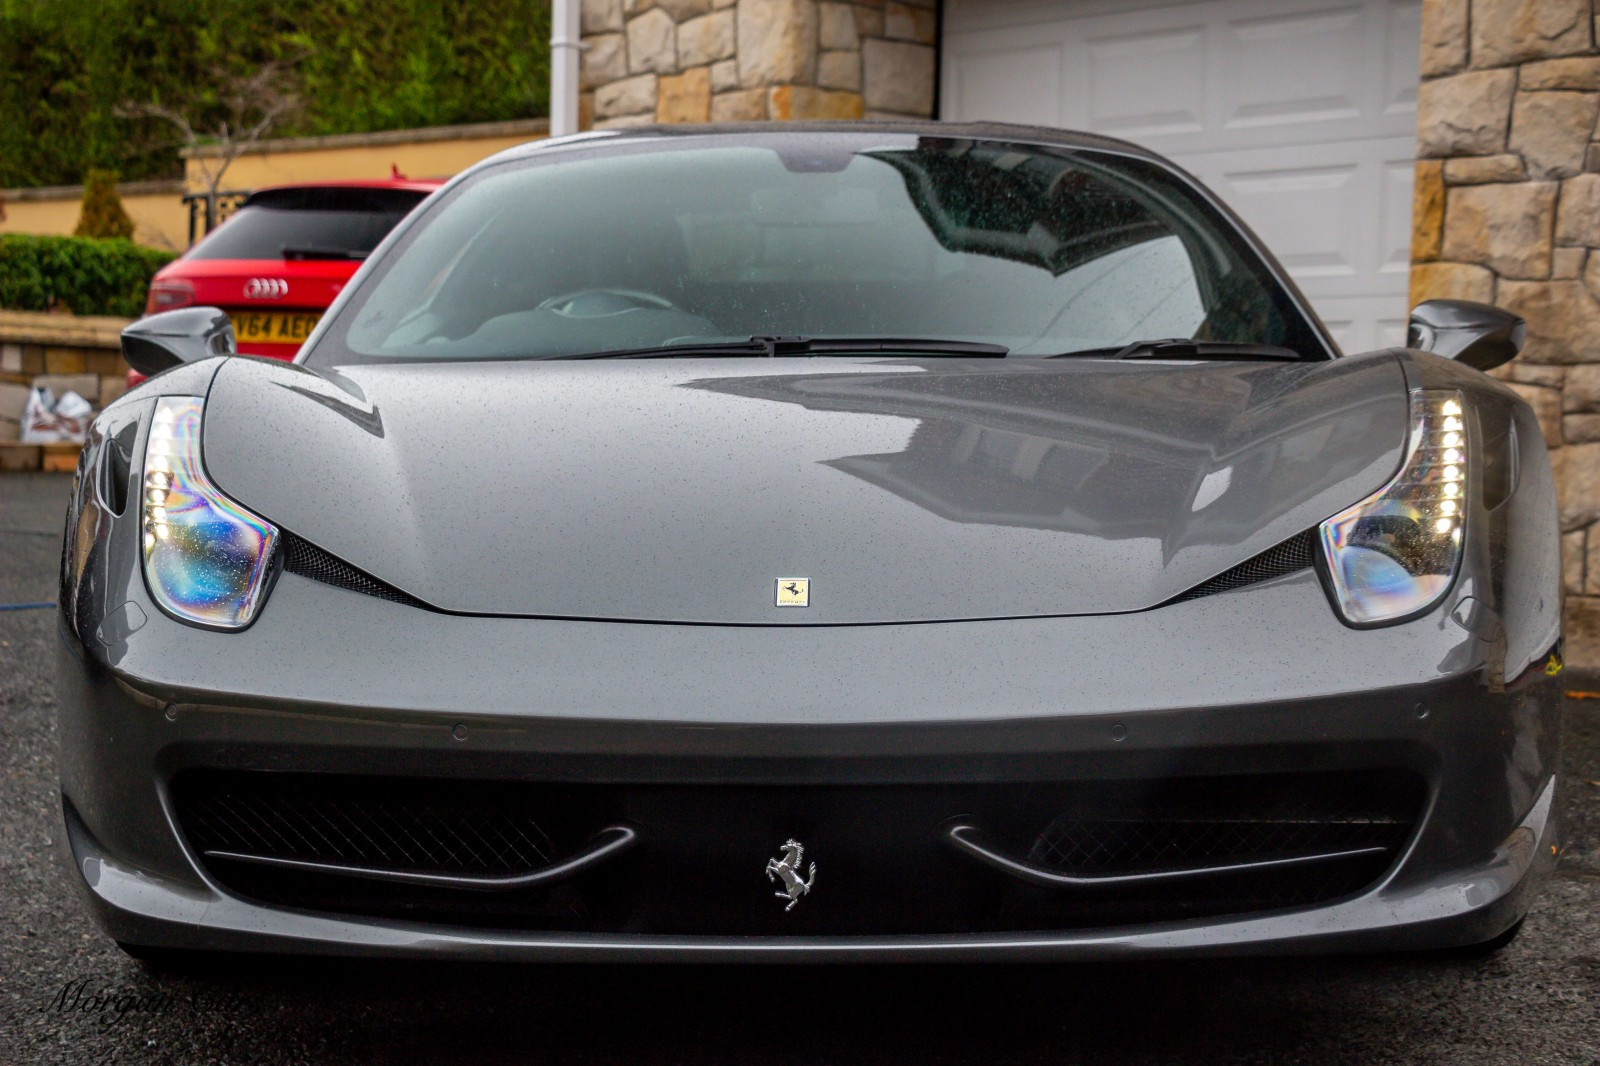 2012 Ferrari 458 4.5 V8 DCT Petrol Semi Auto – Morgan Cars 9 Mound Road, Warrenpoint, Newry BT34 3LW, UK full